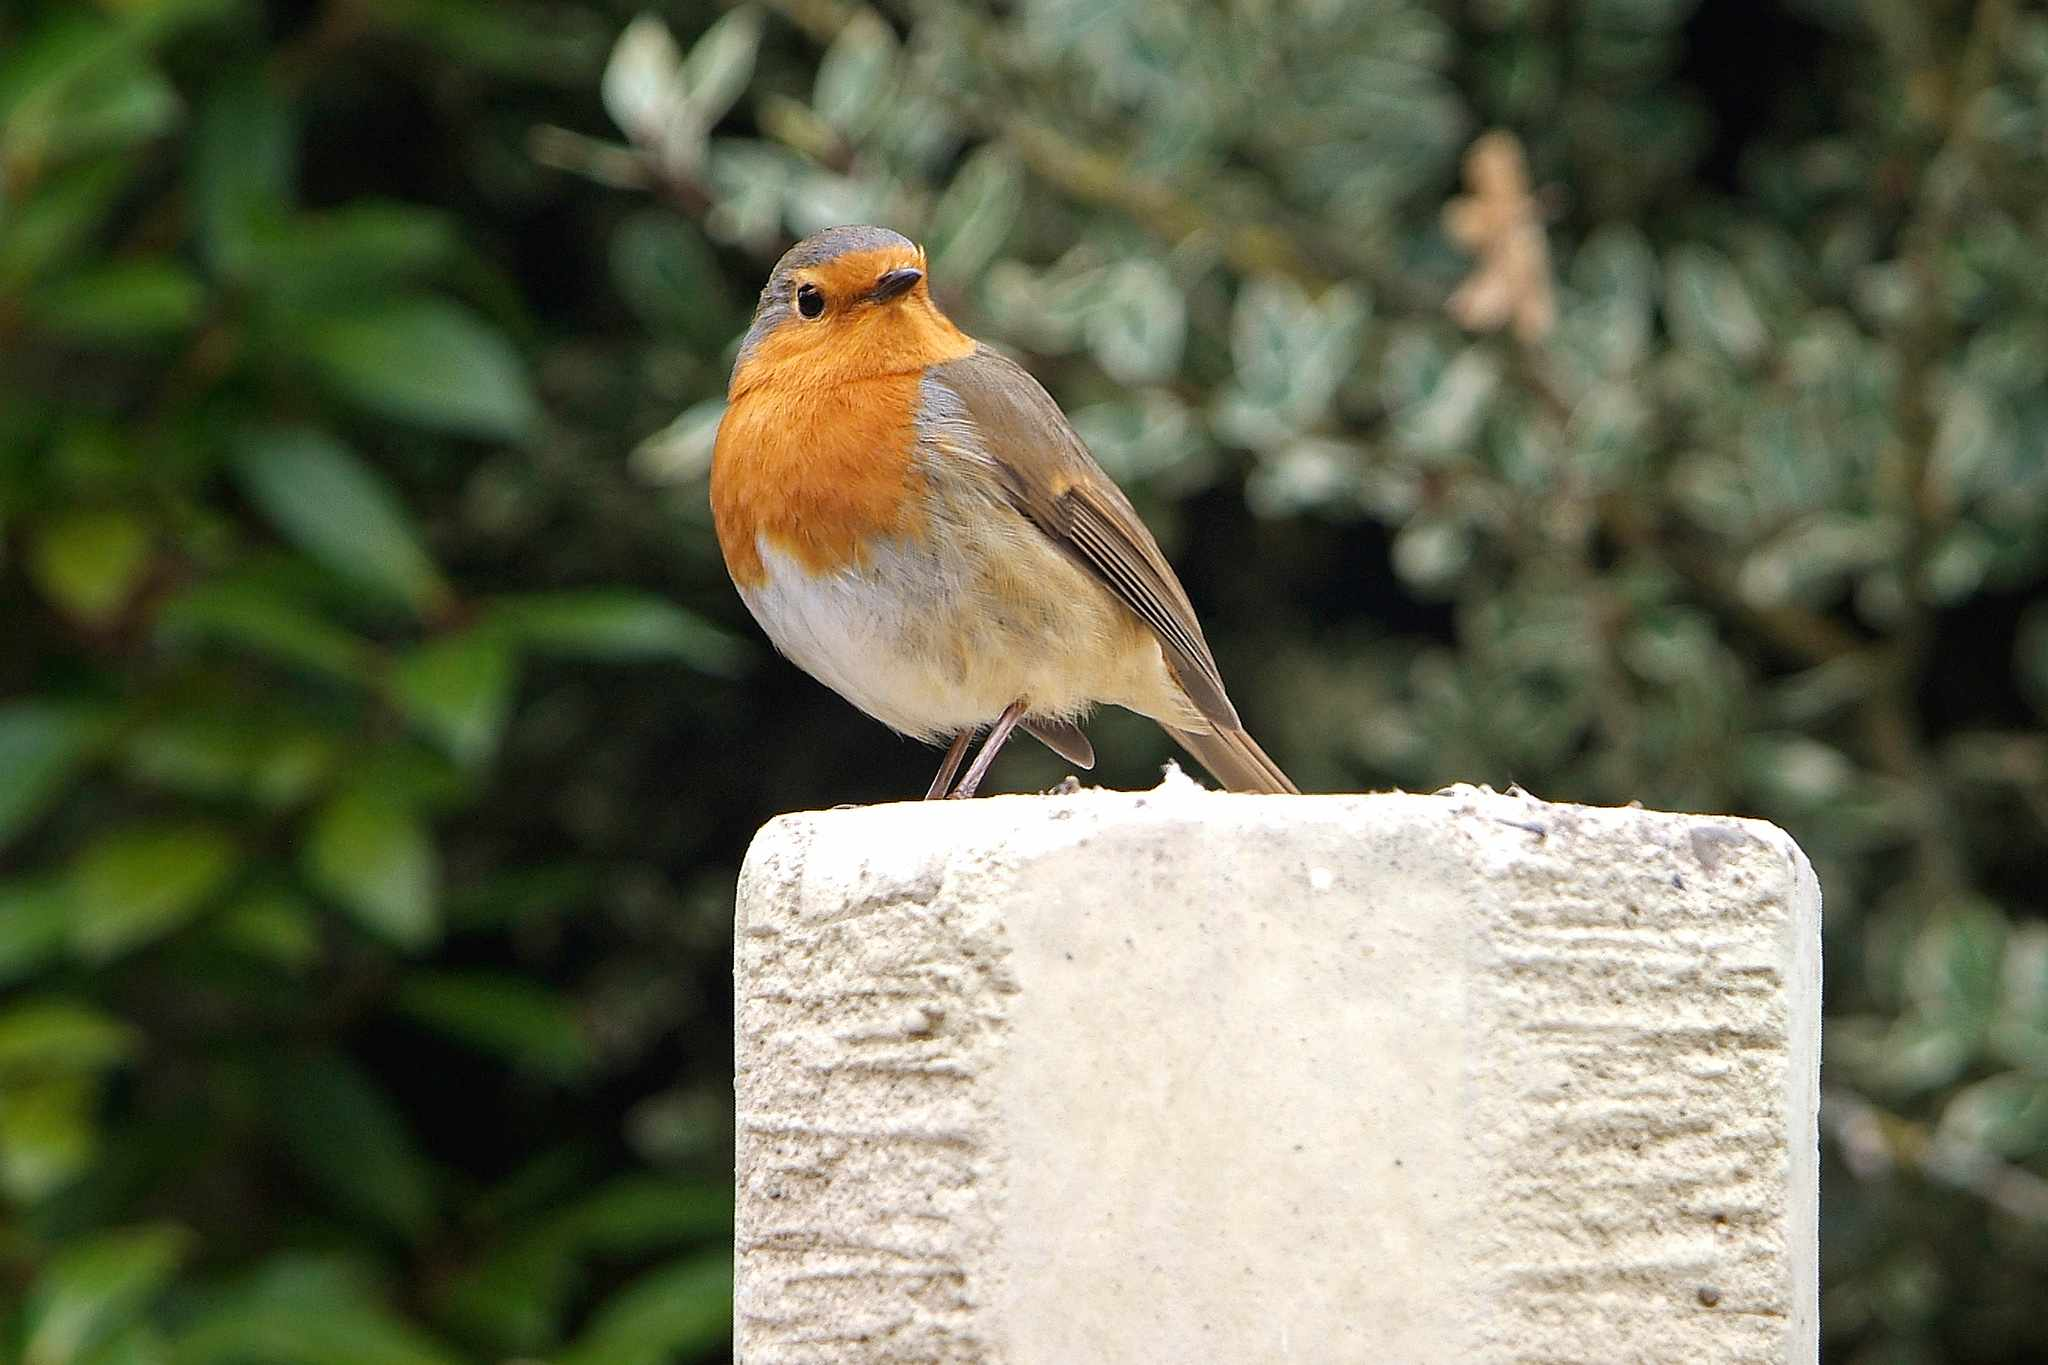 Robin in a garden